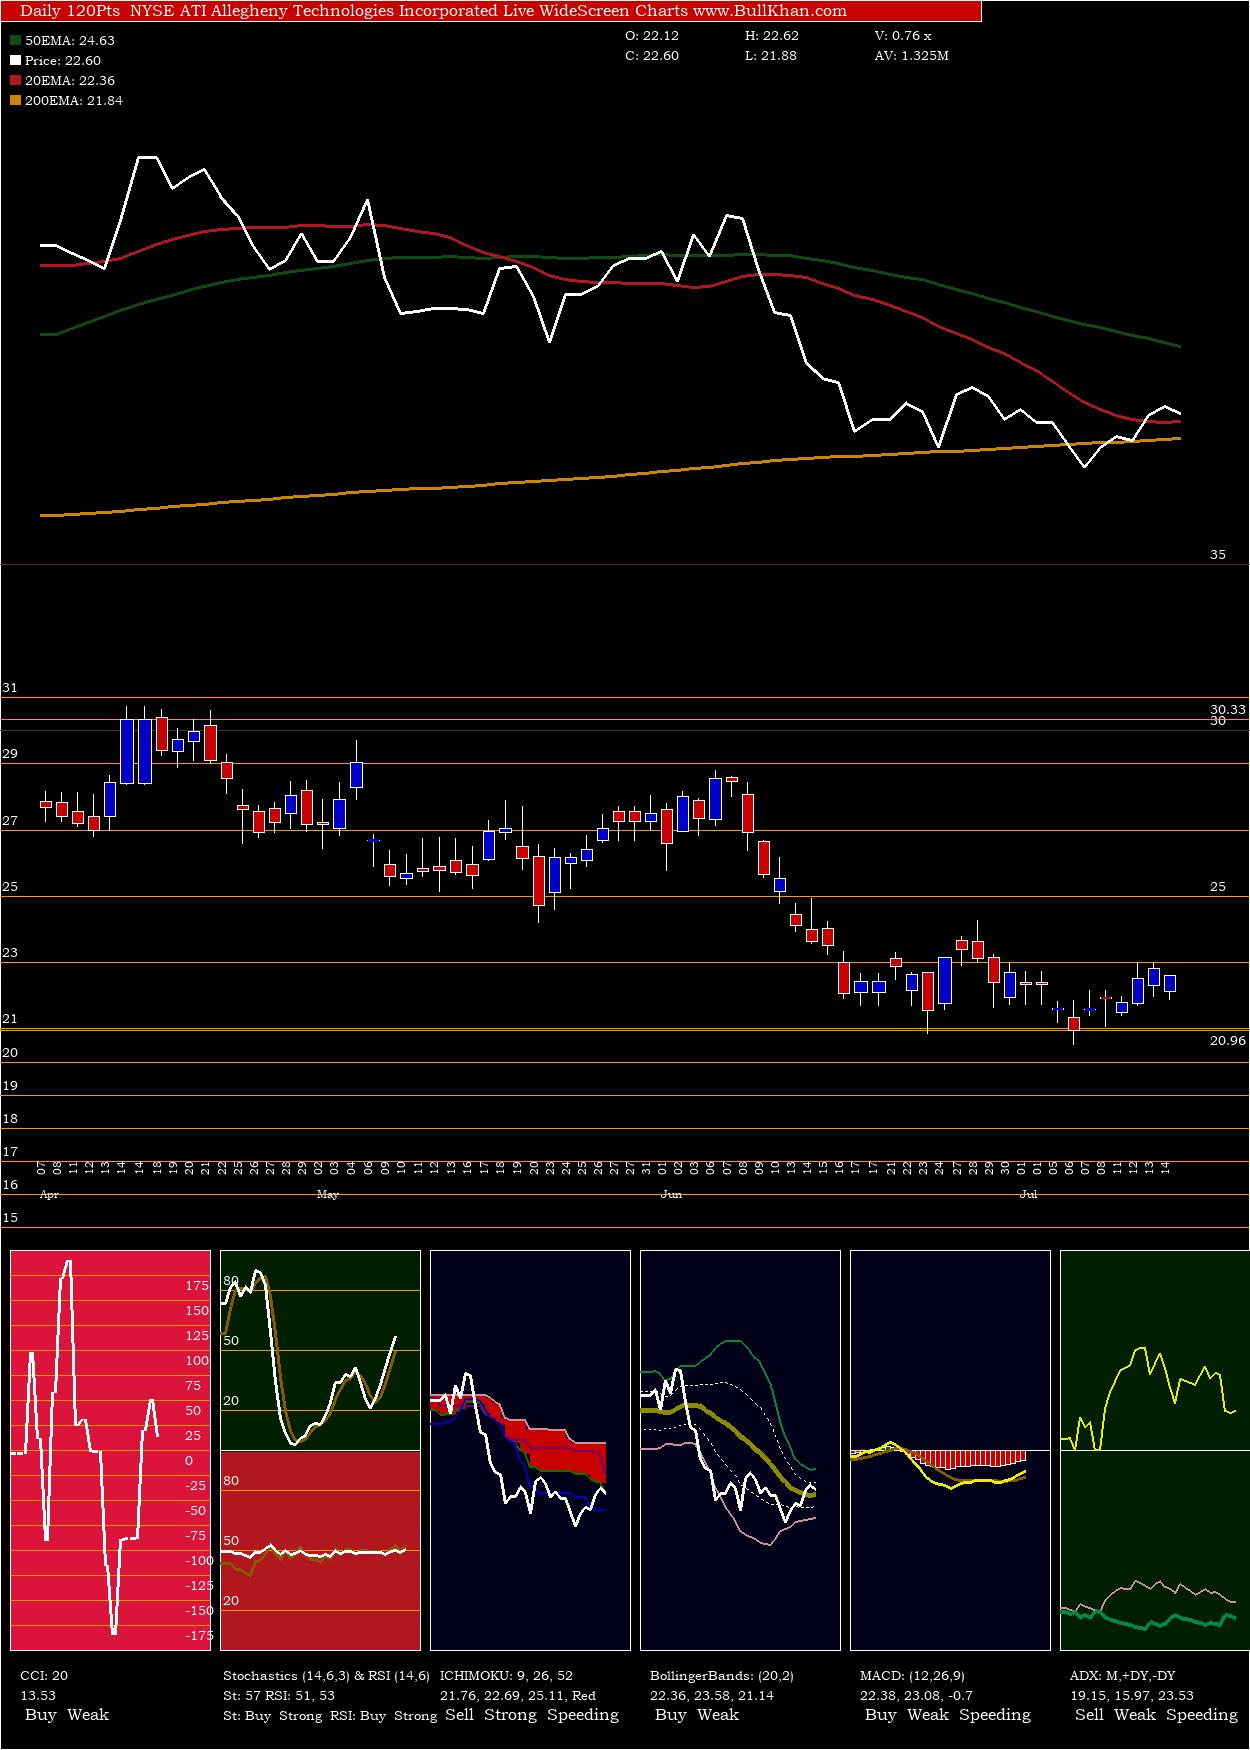 Allegheny Technologies charts and indicators